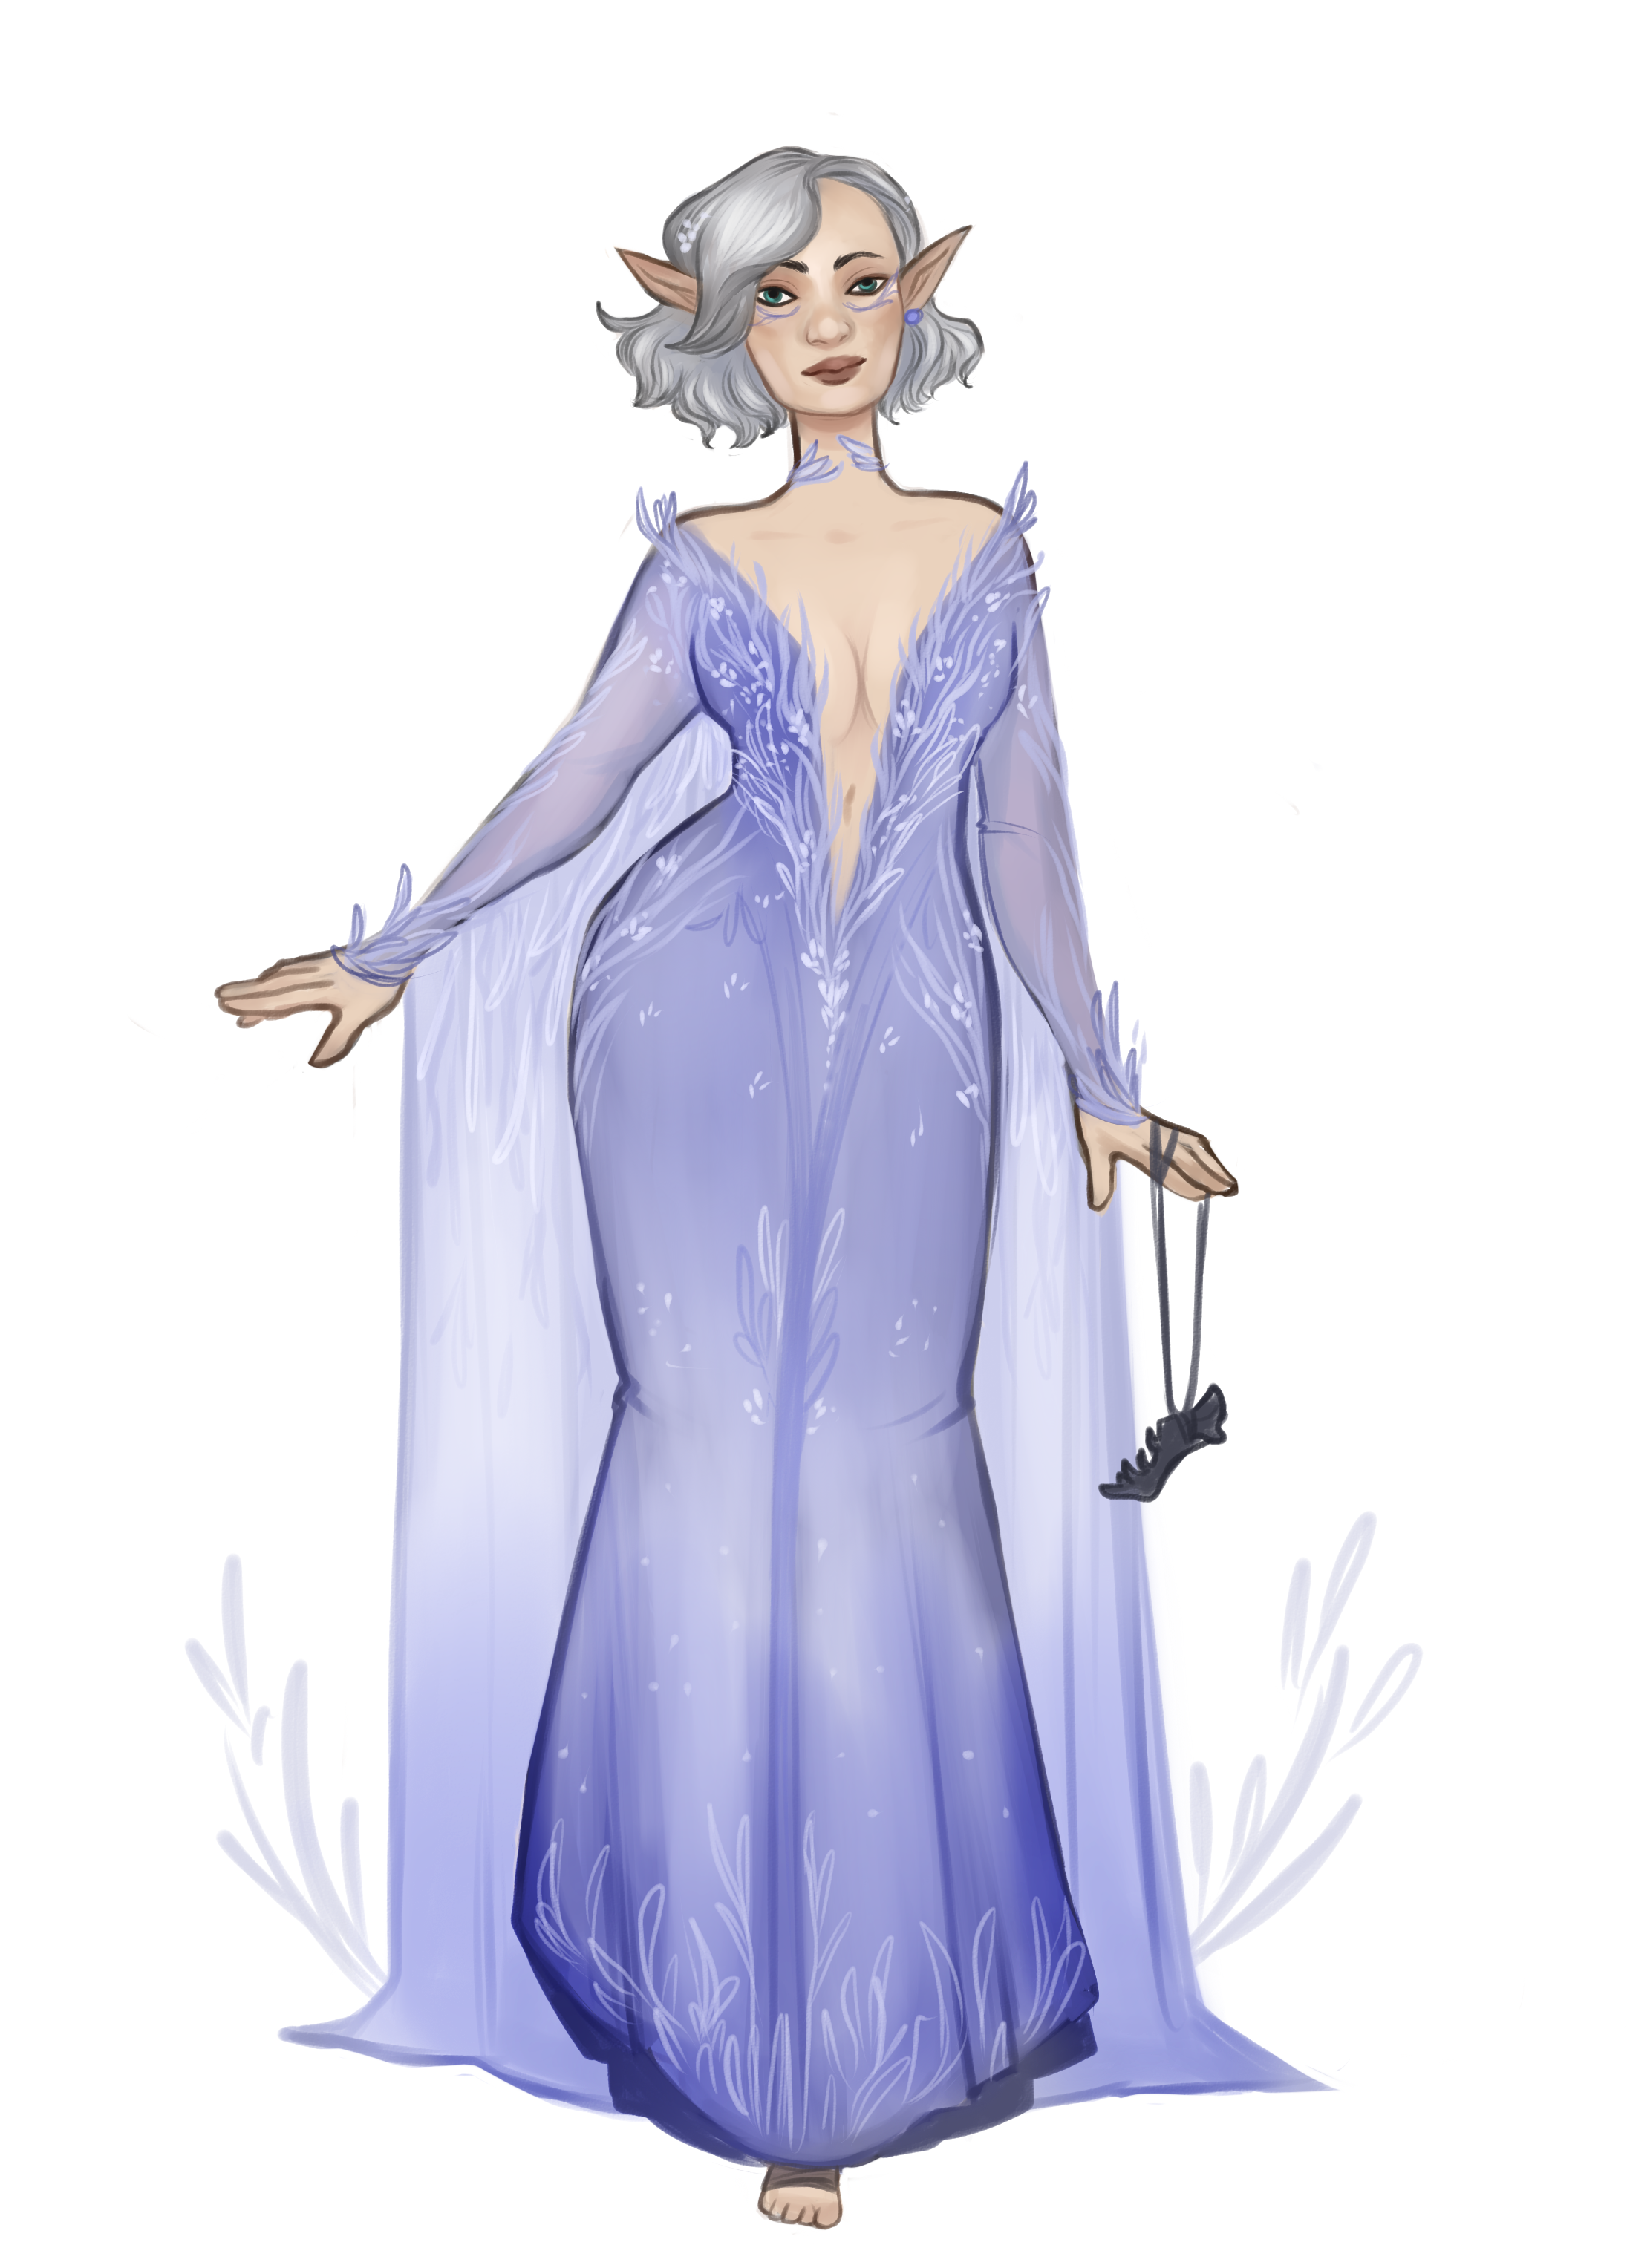 Lana_OutfitCommission.png